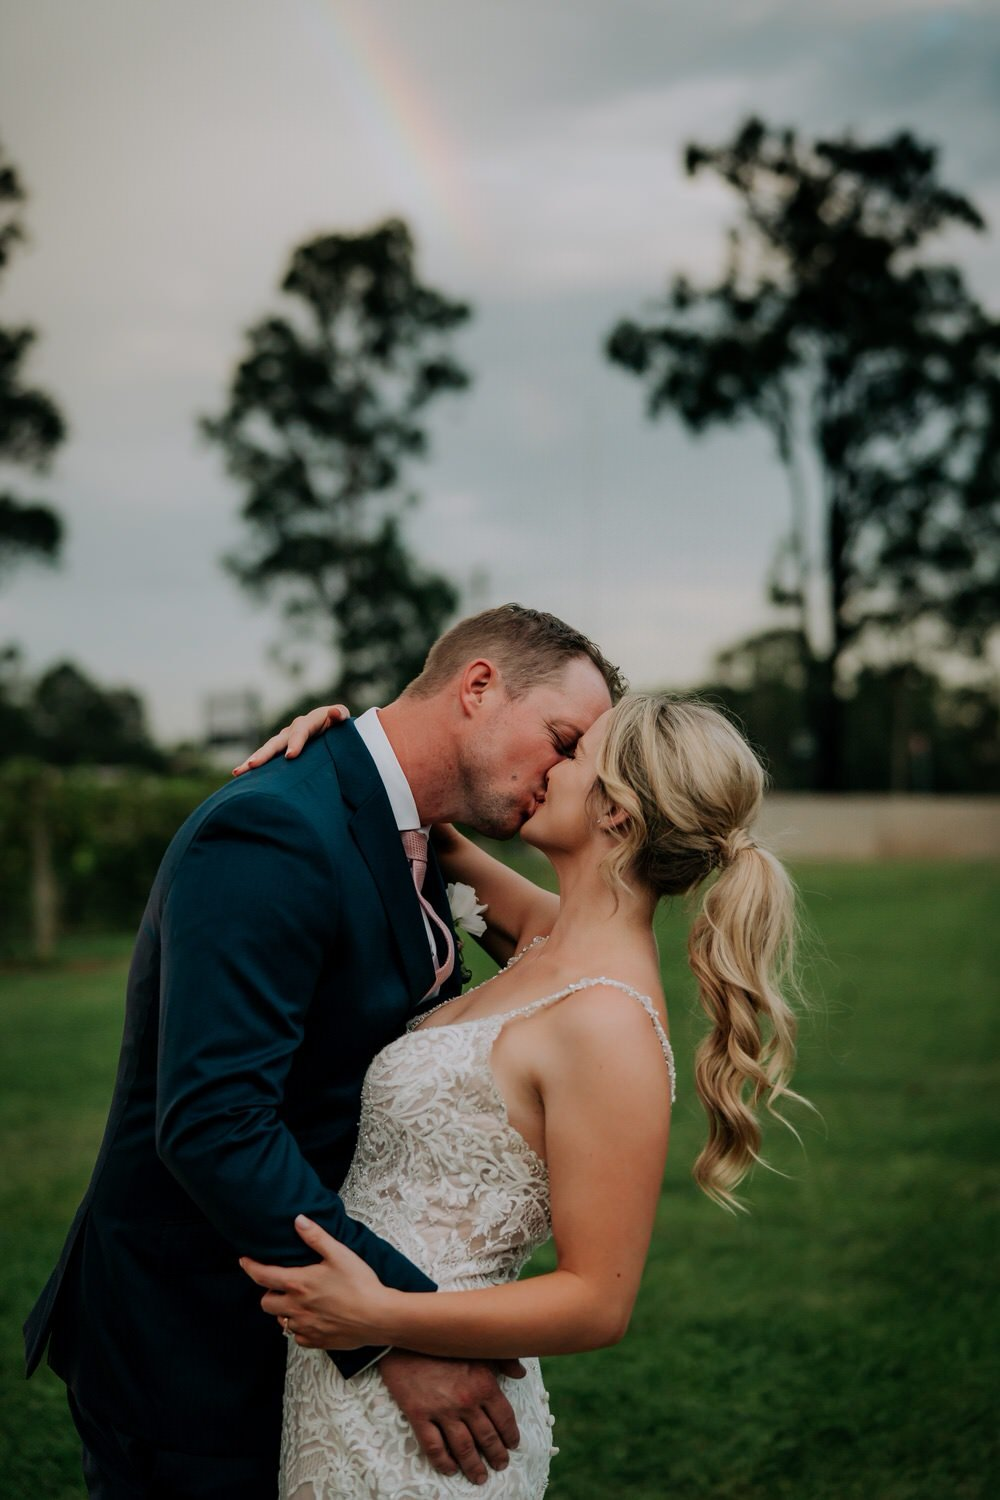 ava-me-photography-maddy-wayne-enzo-hunter-valley-ironbark-hill-vineyard-drayton-wines-wedding-632-1